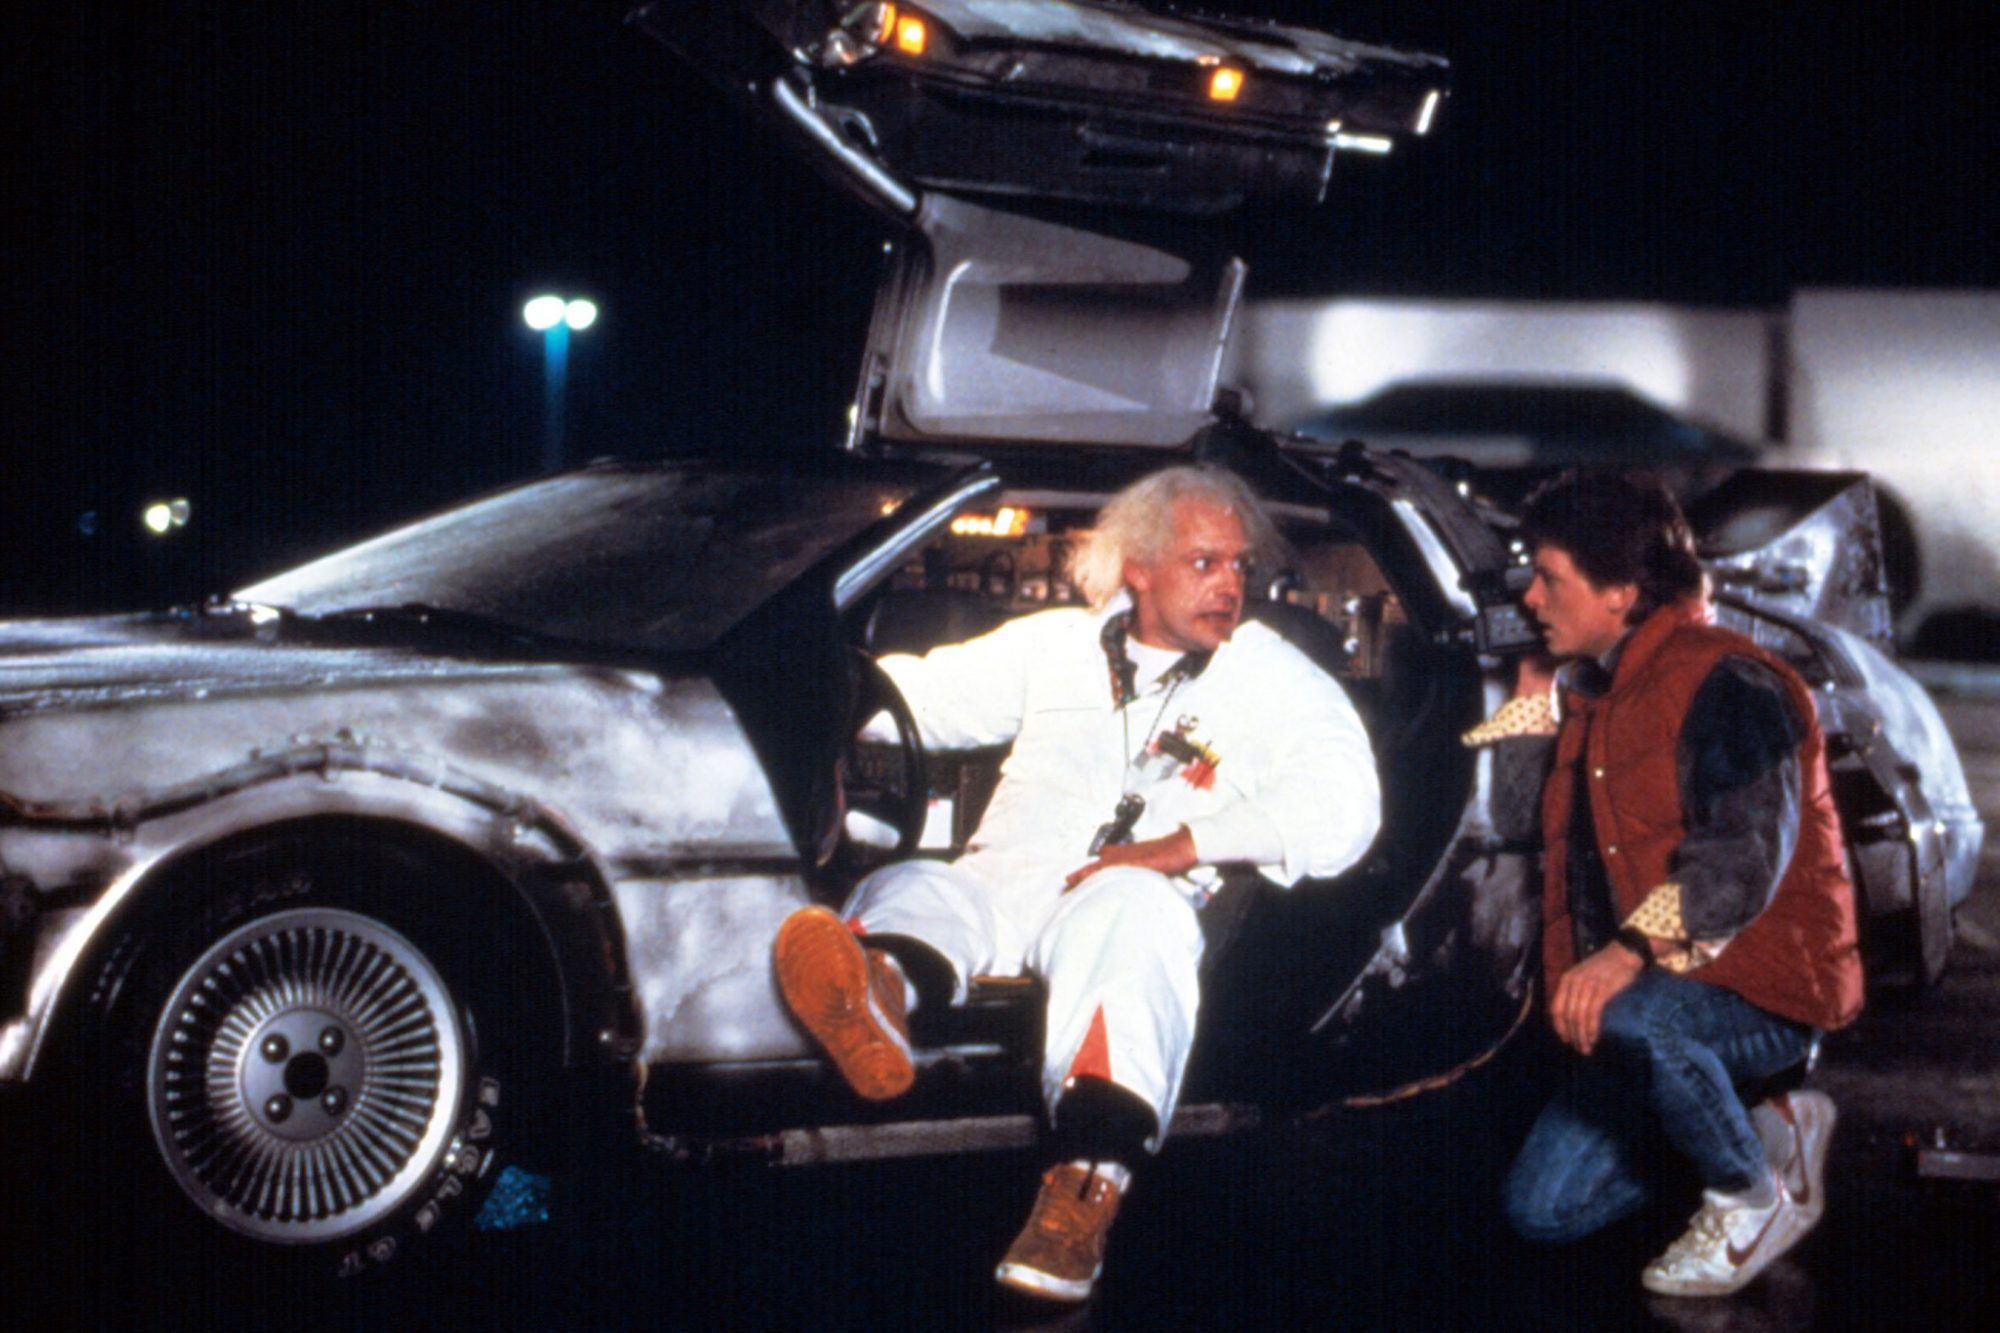 BACK TO THE FUTURE, Christopher Lloyd, Michael J. Fox, 1985. (c) MCA/Universal Pictures/ Courtesy: E